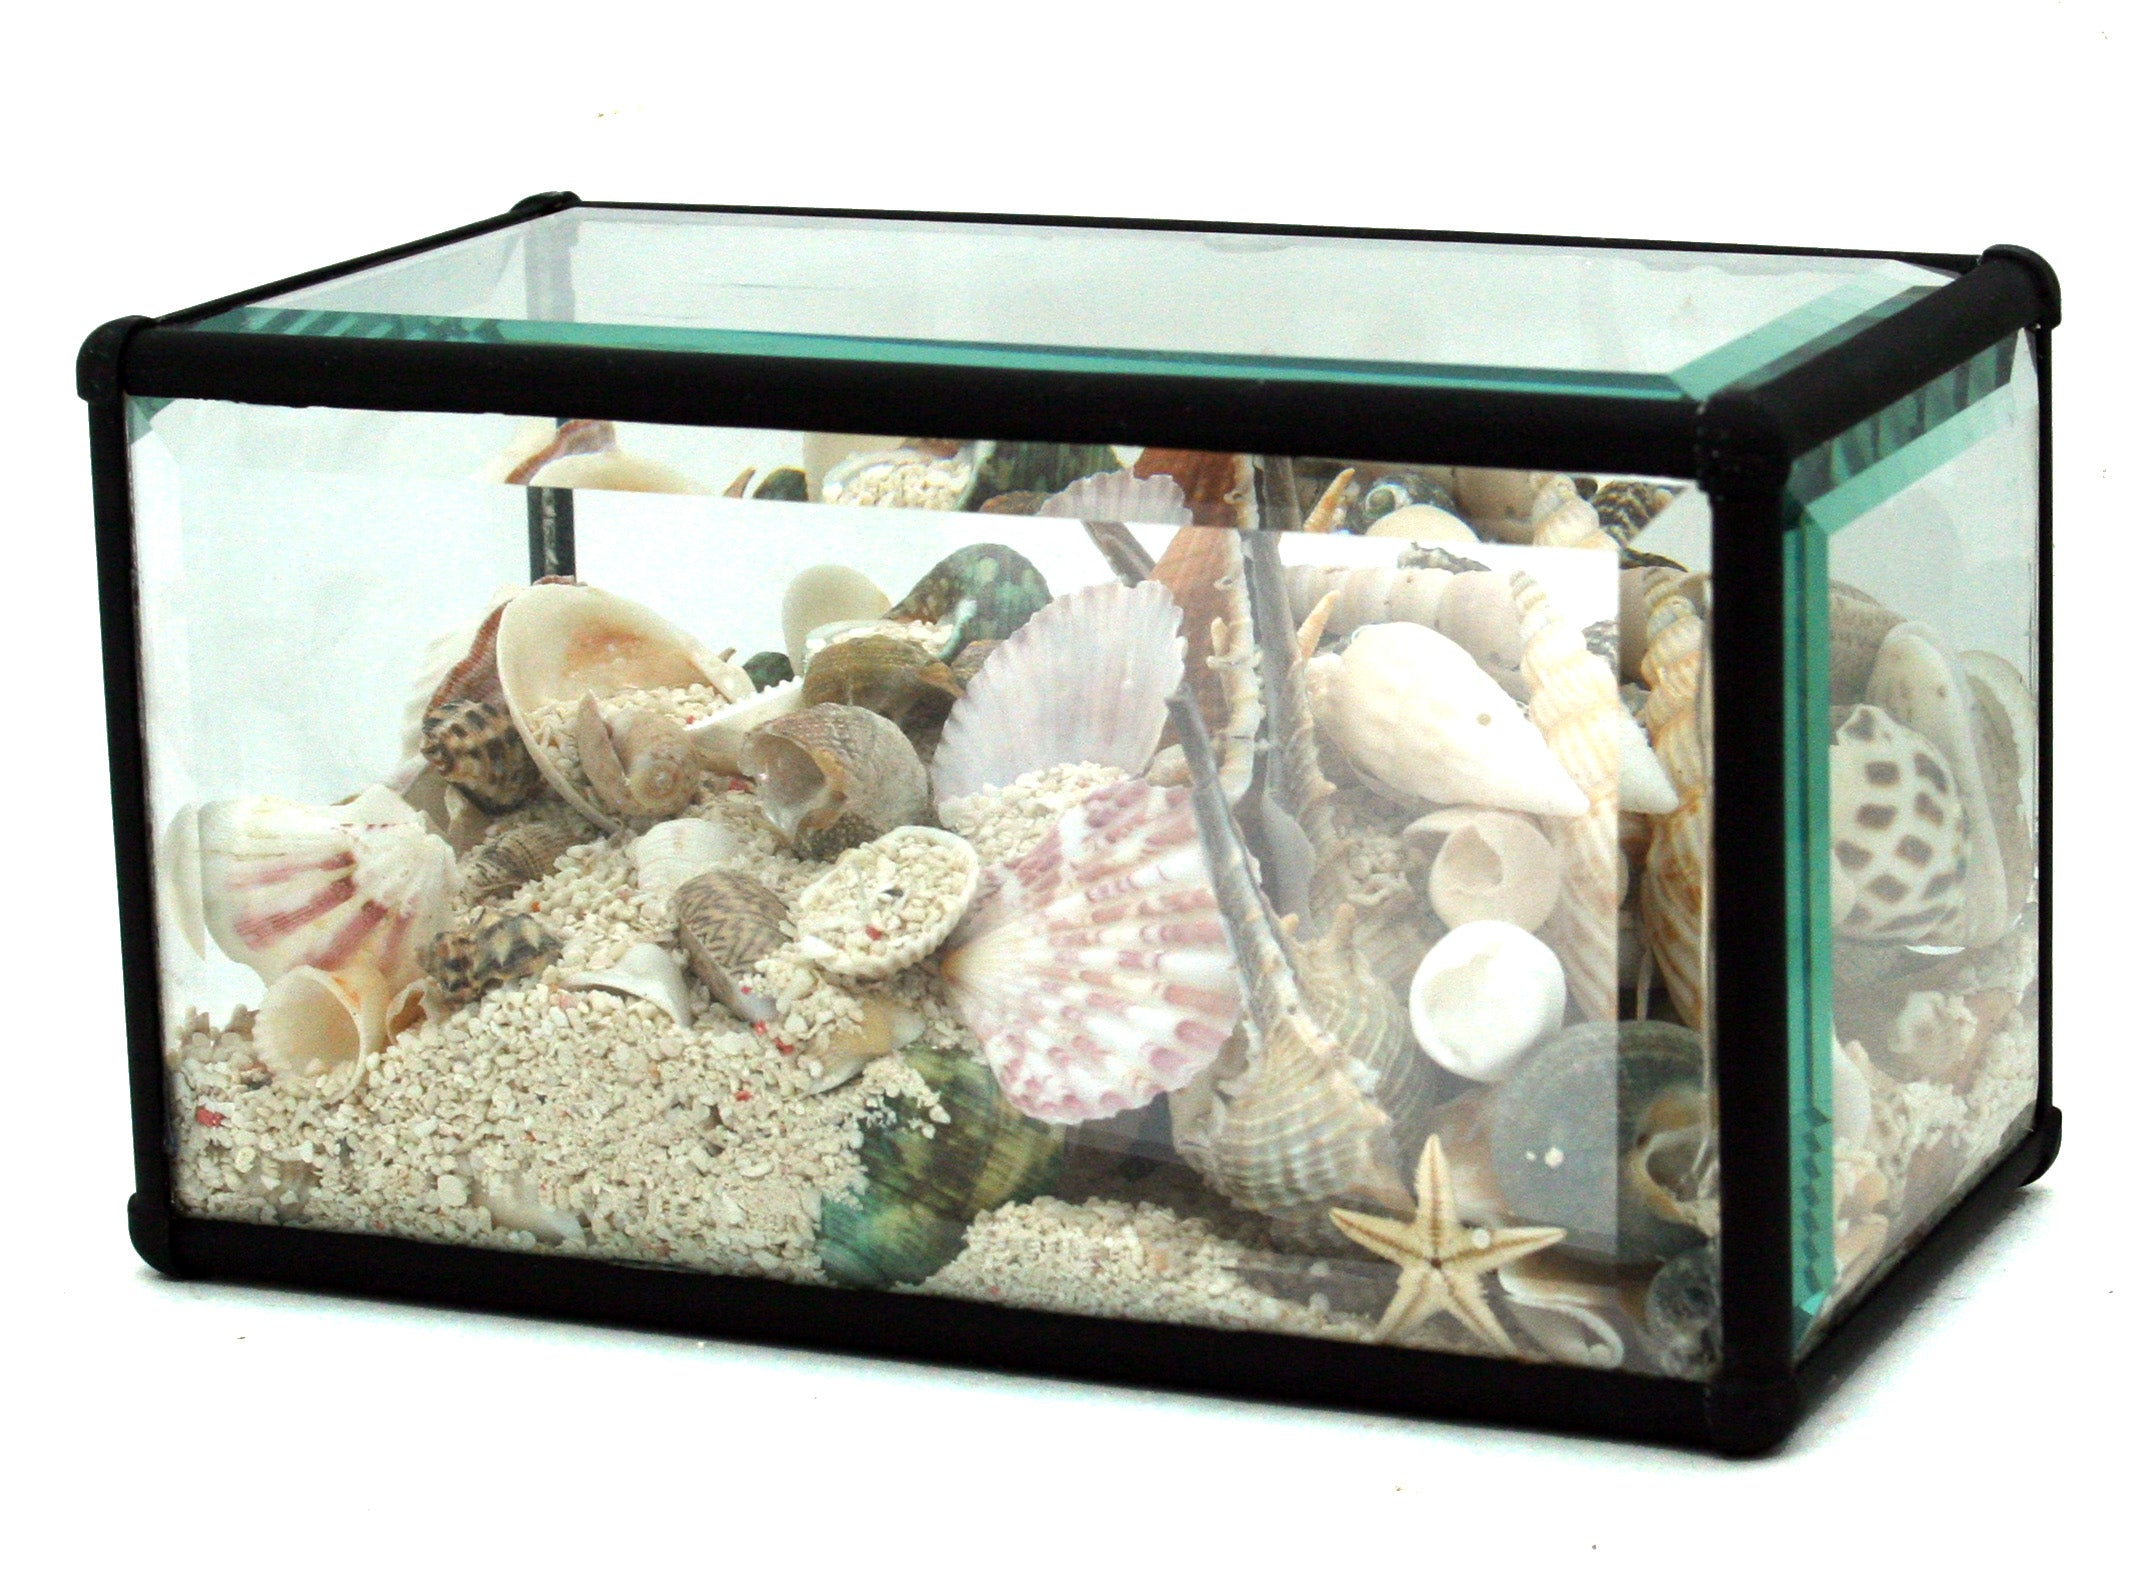 Medium Shell Terrarium - Wanderlustre